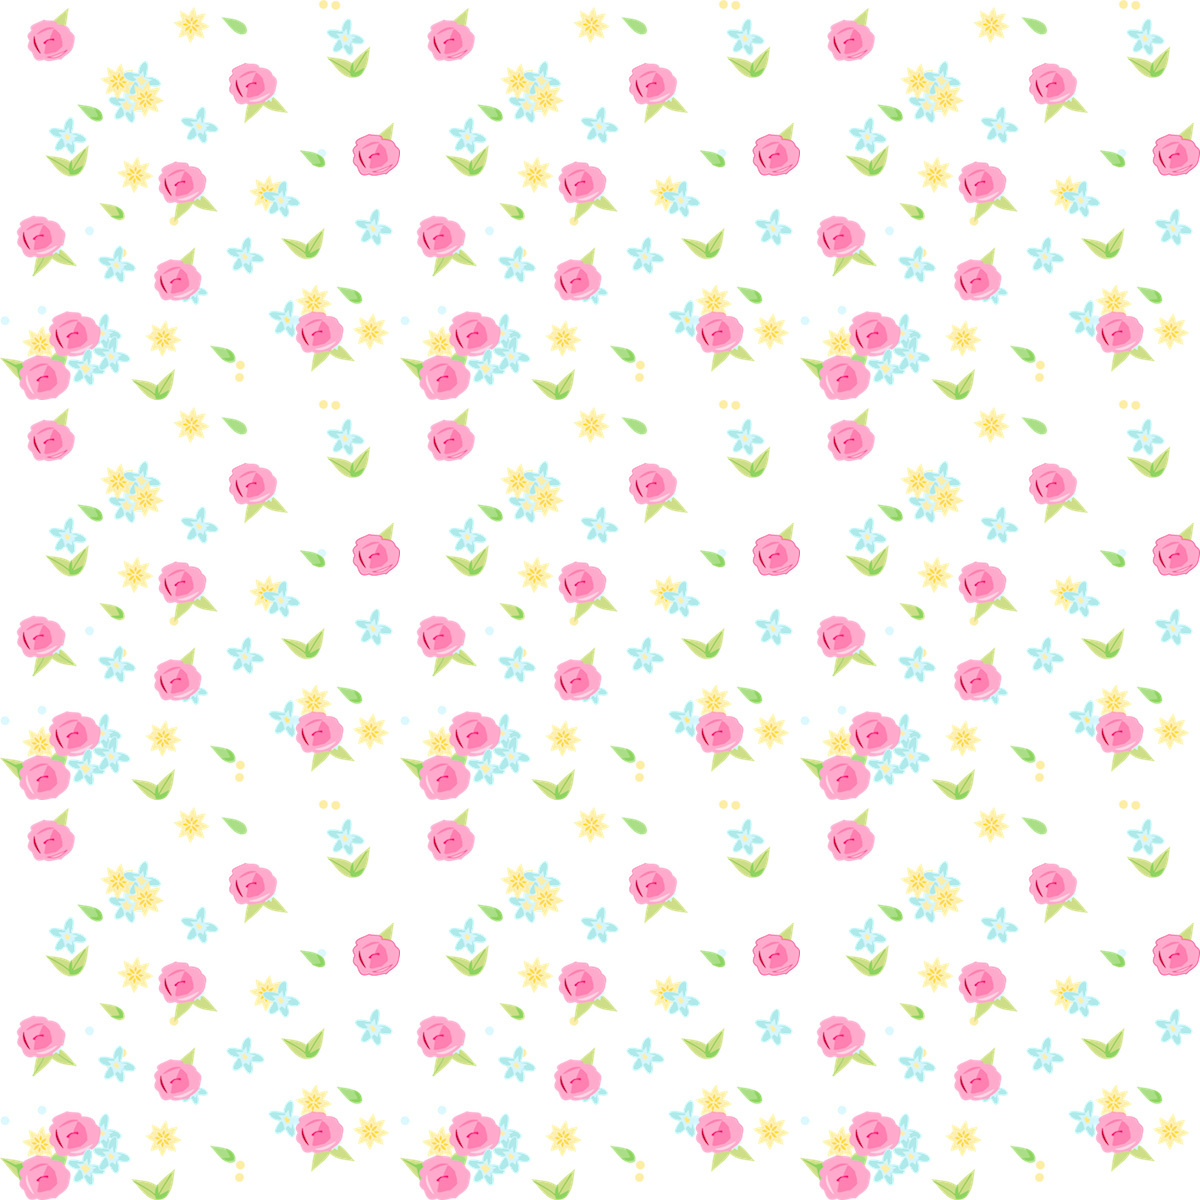 This is a photo of Gorgeous Free Scrapbook Paper Printable